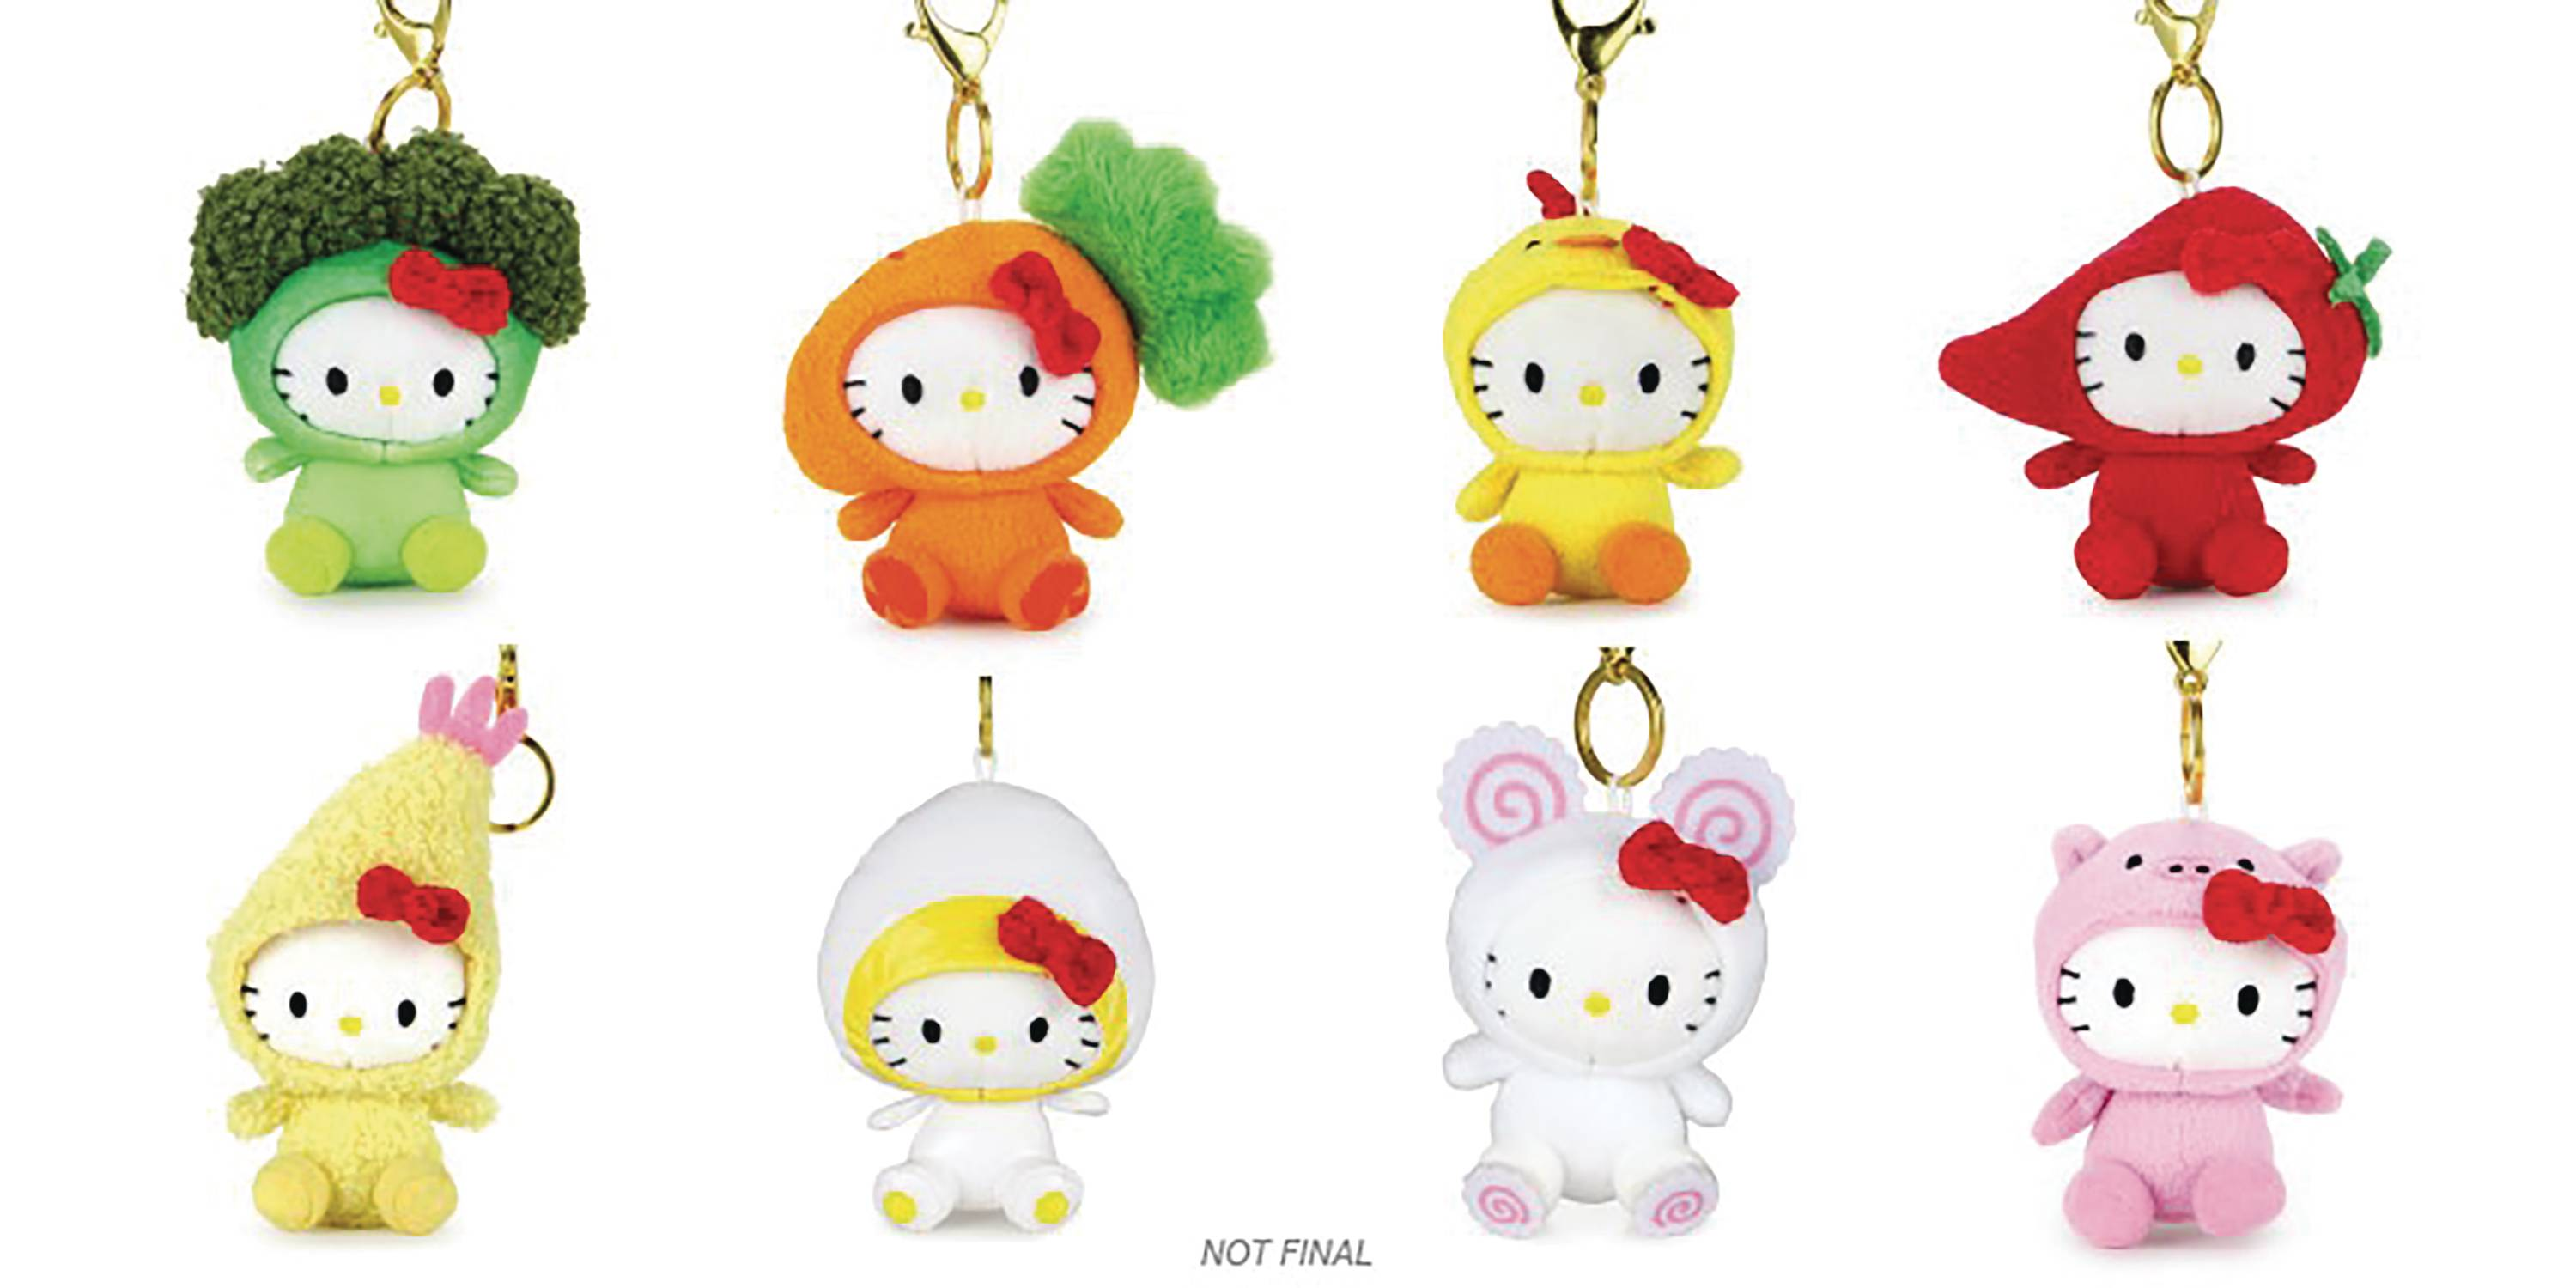 CUP NOODLES X HELLO KITTY PLUSH CHARMS CDU 24PC BMB DS